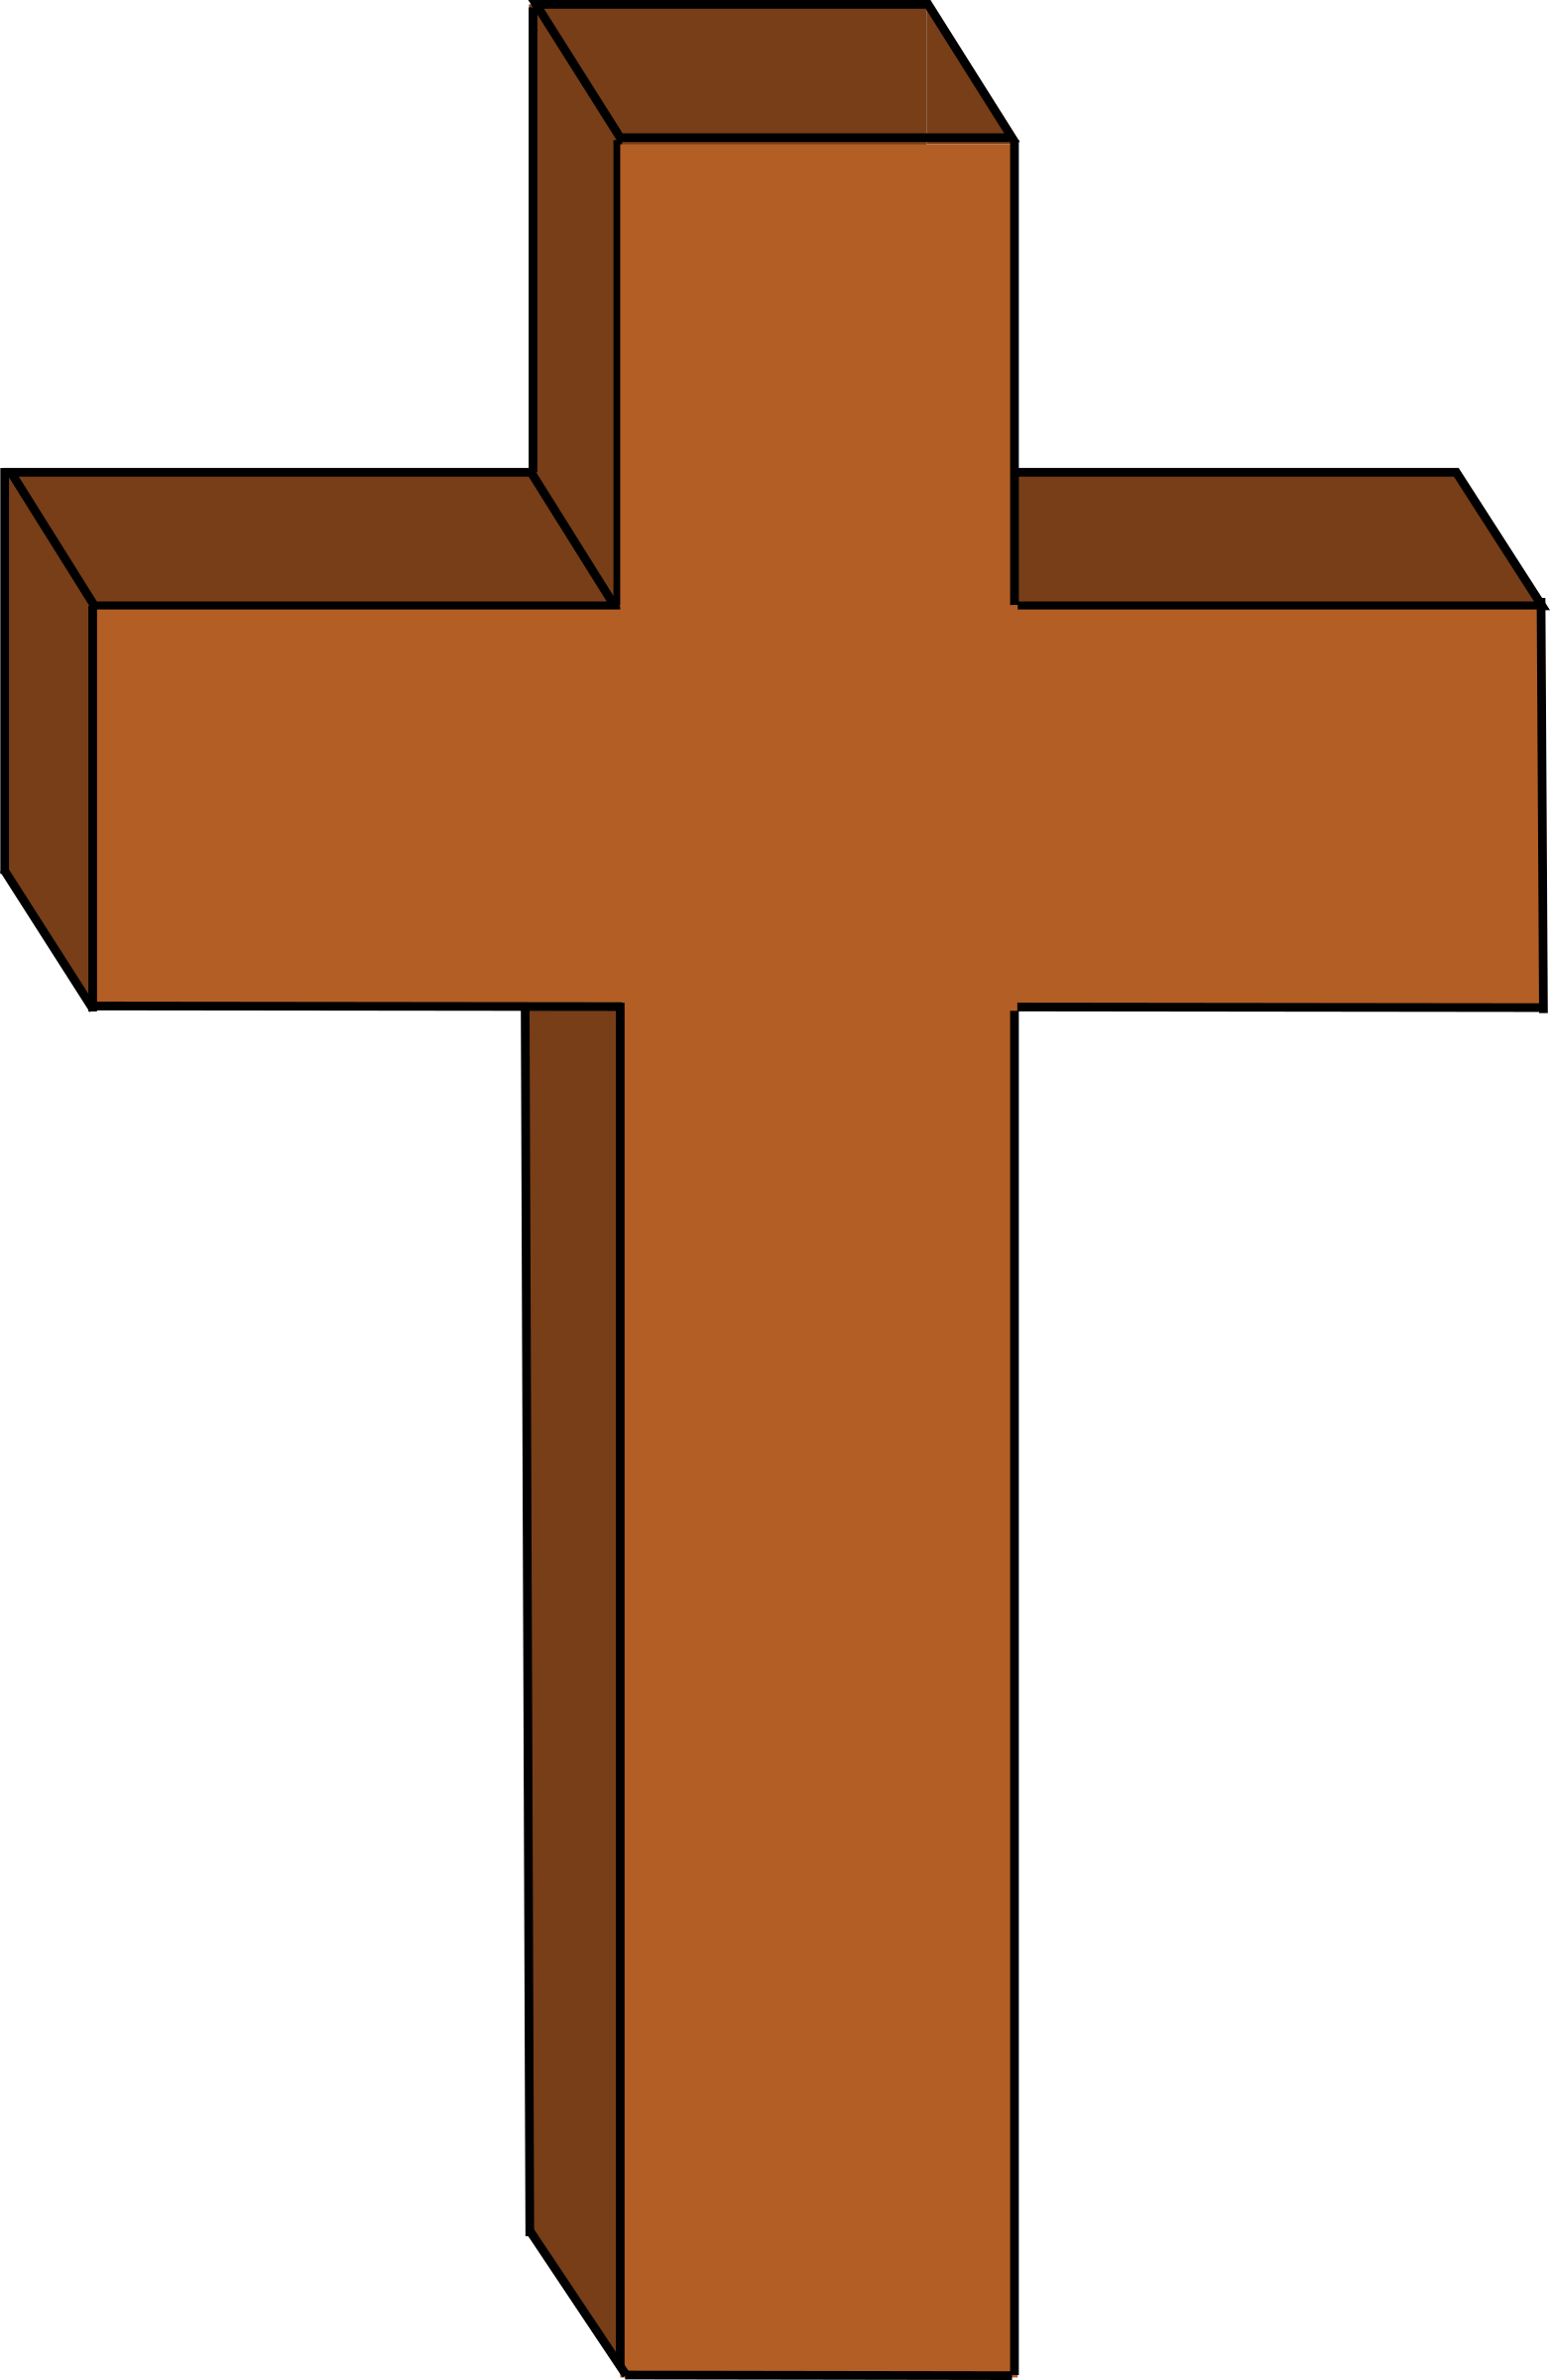 Cross clipart. Free cliparts brown download